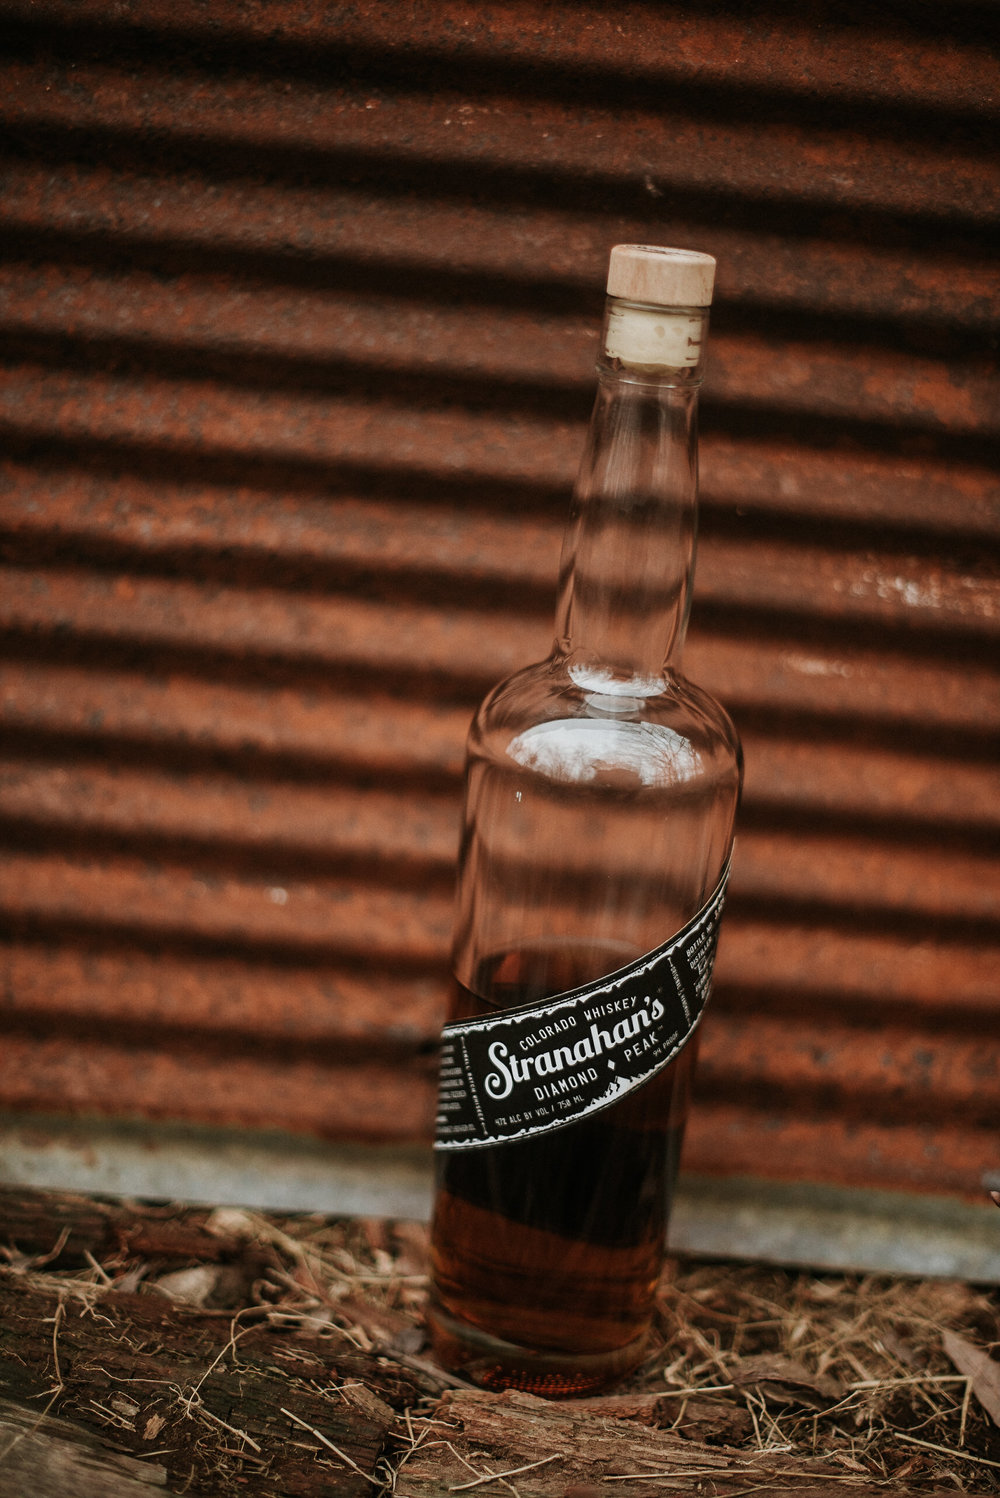 Bottle of Stranahan's whiskey